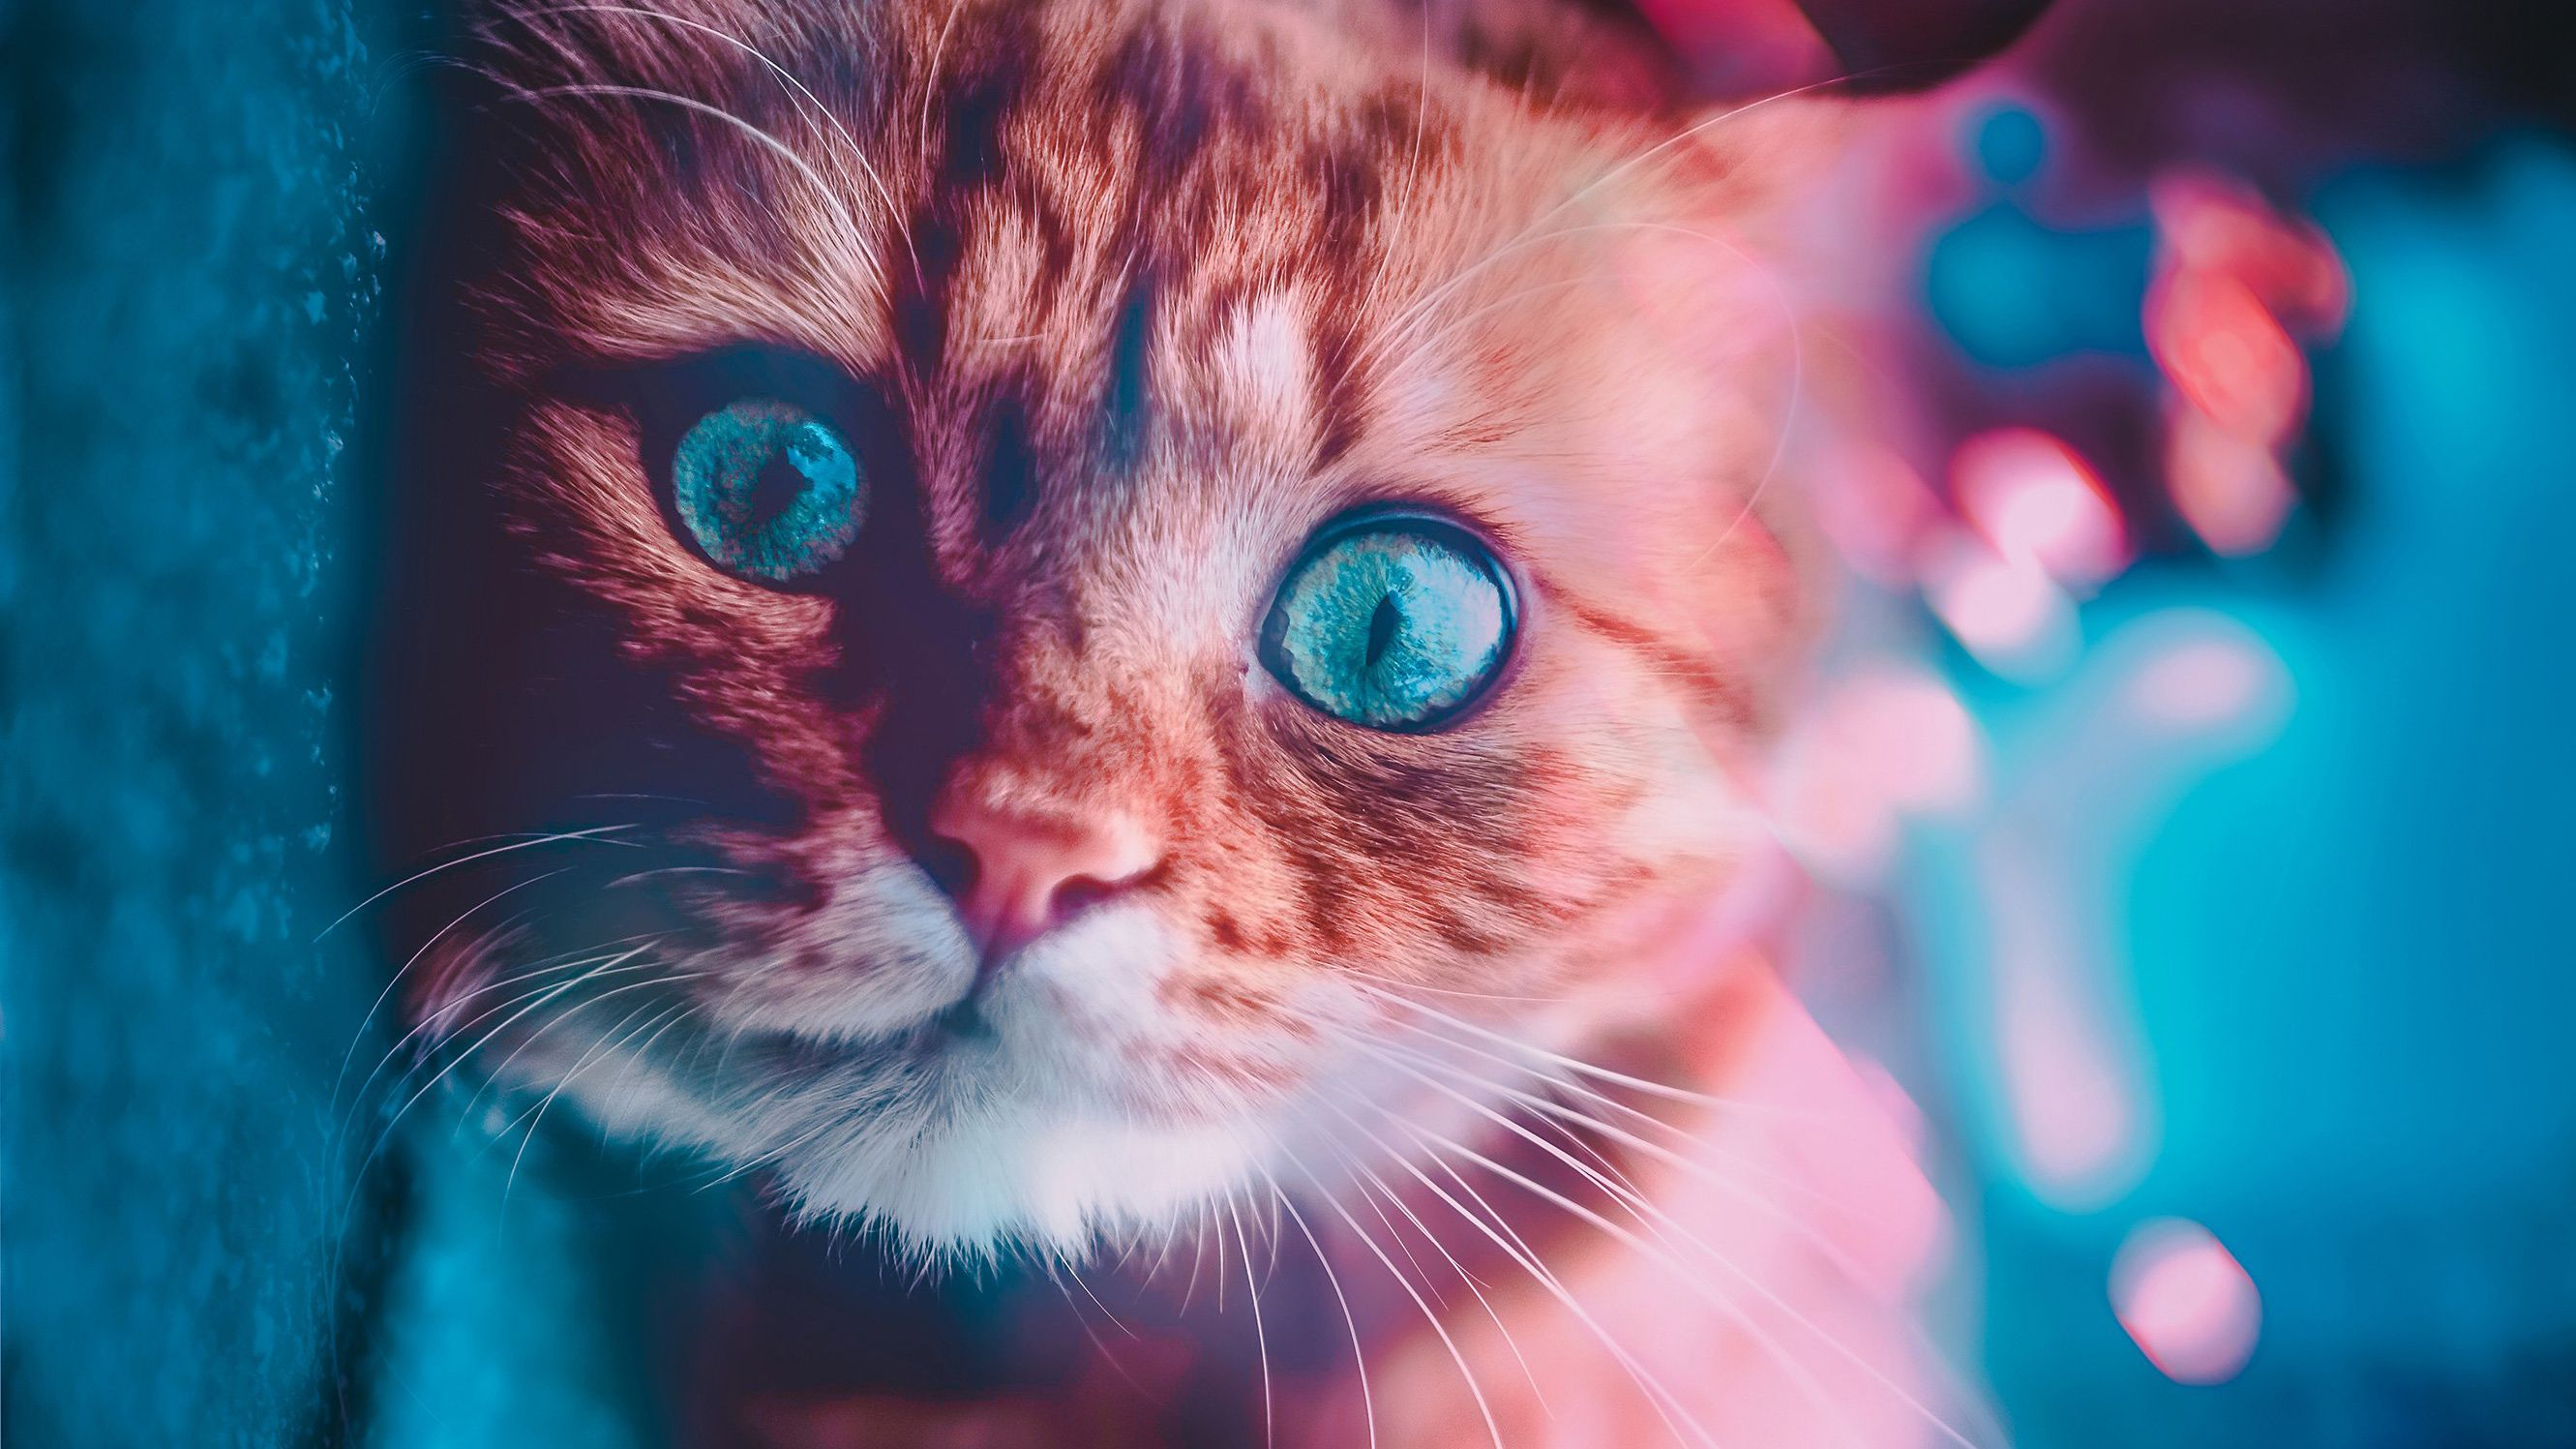 Wallpapers Fur Blue Cat Small To Medium Sized Cats Snout White Tabby Cat Cats Tabby Cat